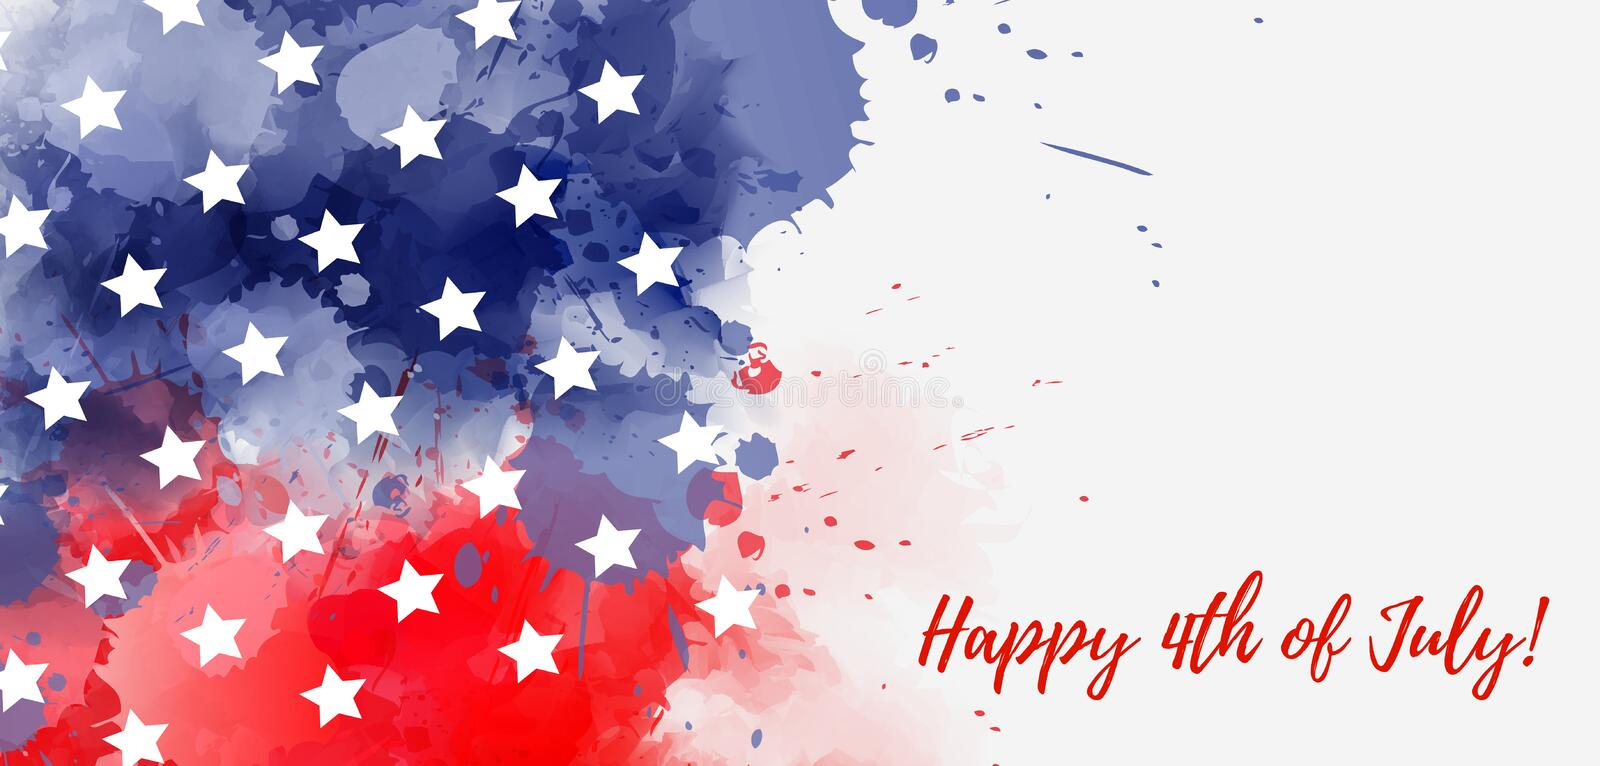 USA Happy 4th of July background. Abstract grunge watercolor paint splashes in flag colors with text. Template for holiday banner, invitation, flyer, etc royalty free illustration